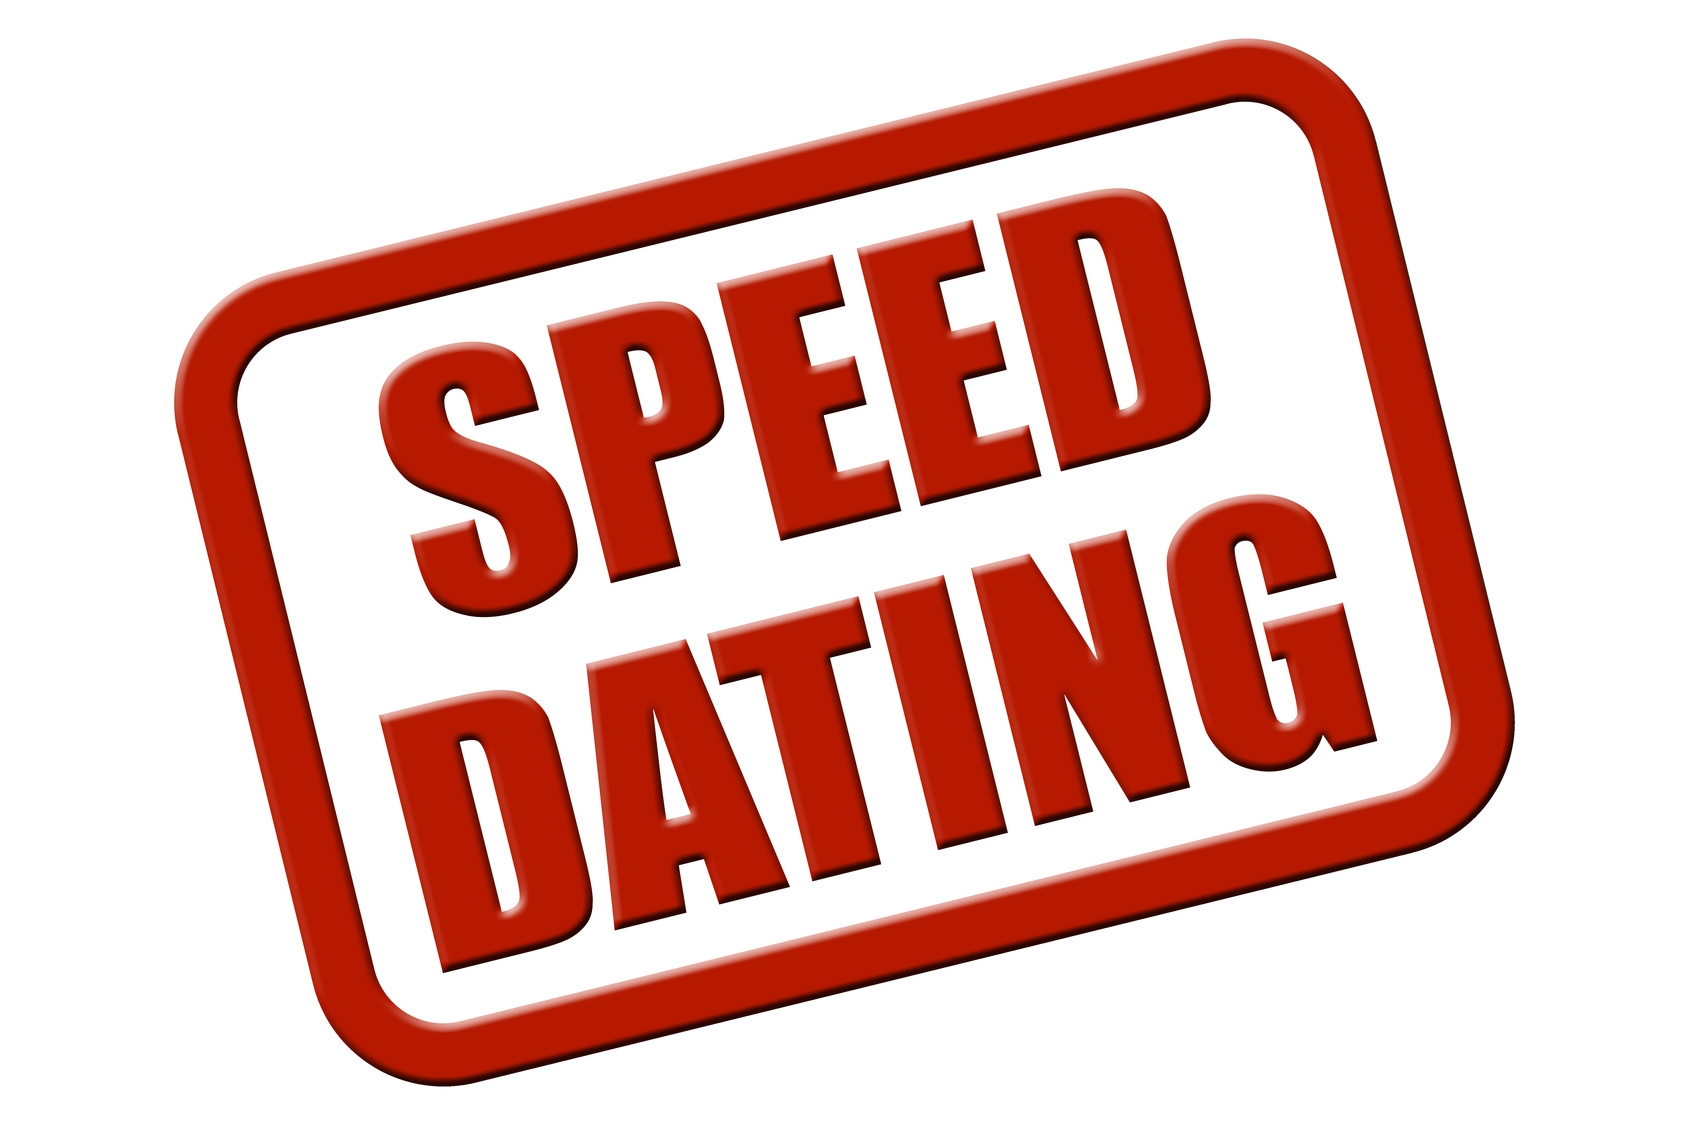 pua speed dating email Men are hiring professional puas (pick-up artists) like the team at pda to help write their online dating profiles and email messages.